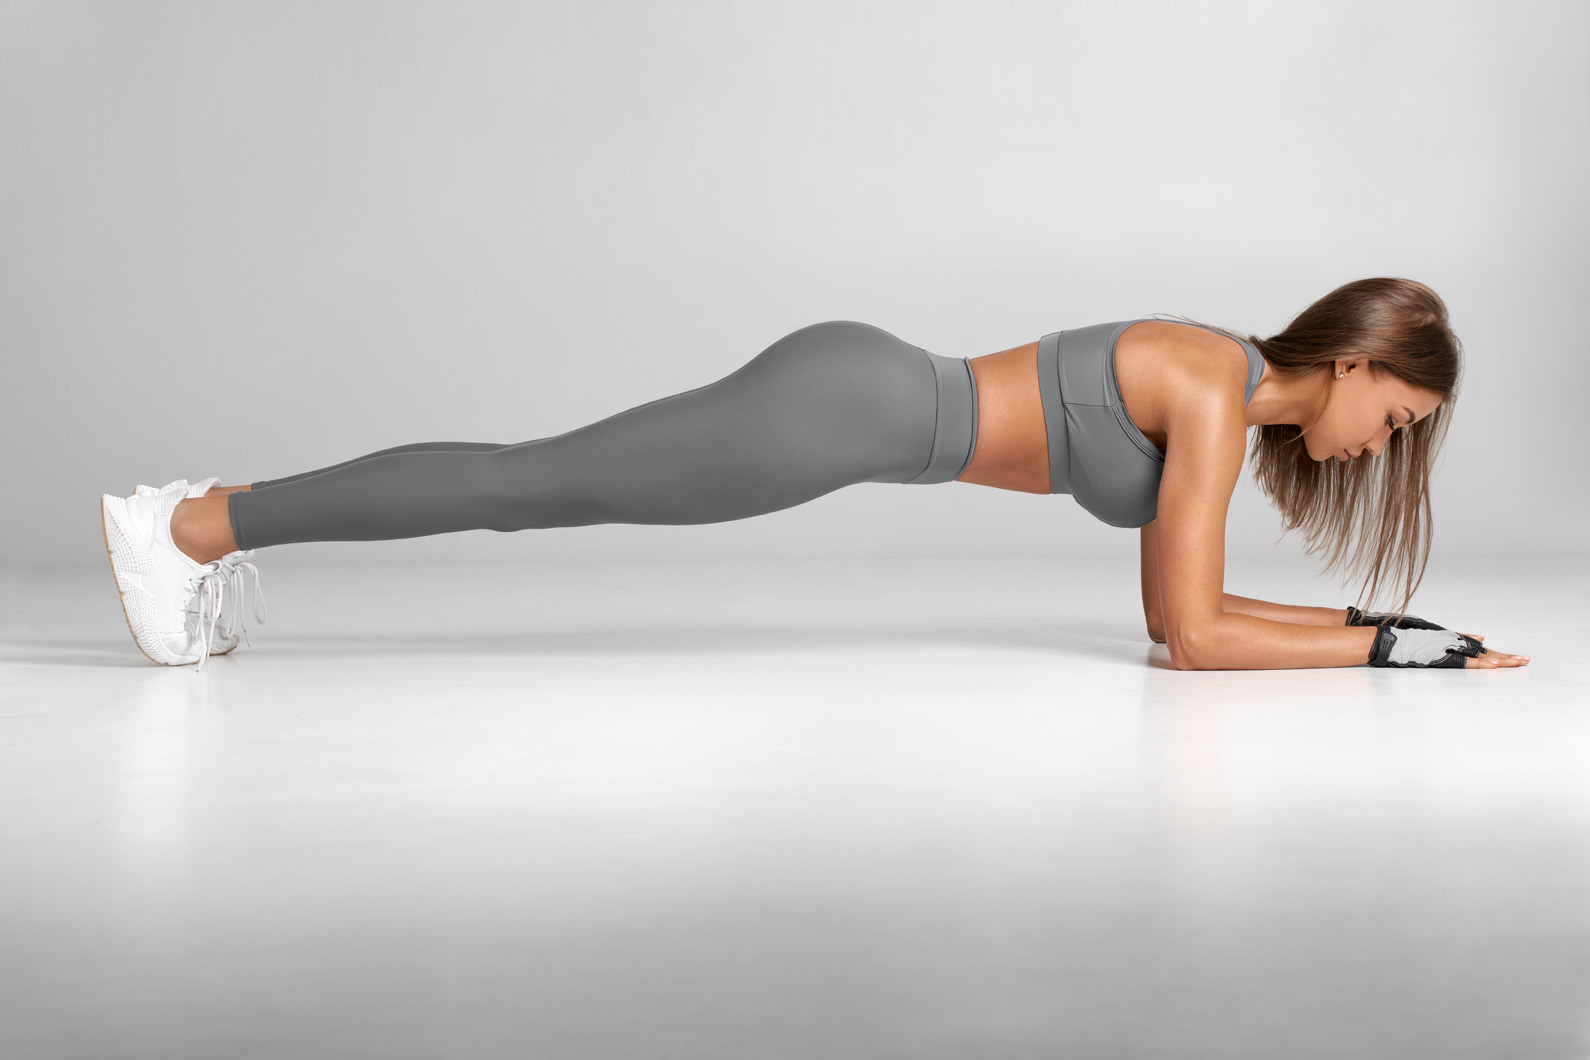 Tired of Planks Sharpen your Ab Workout with 'Body Saws'   PLEIJ ...